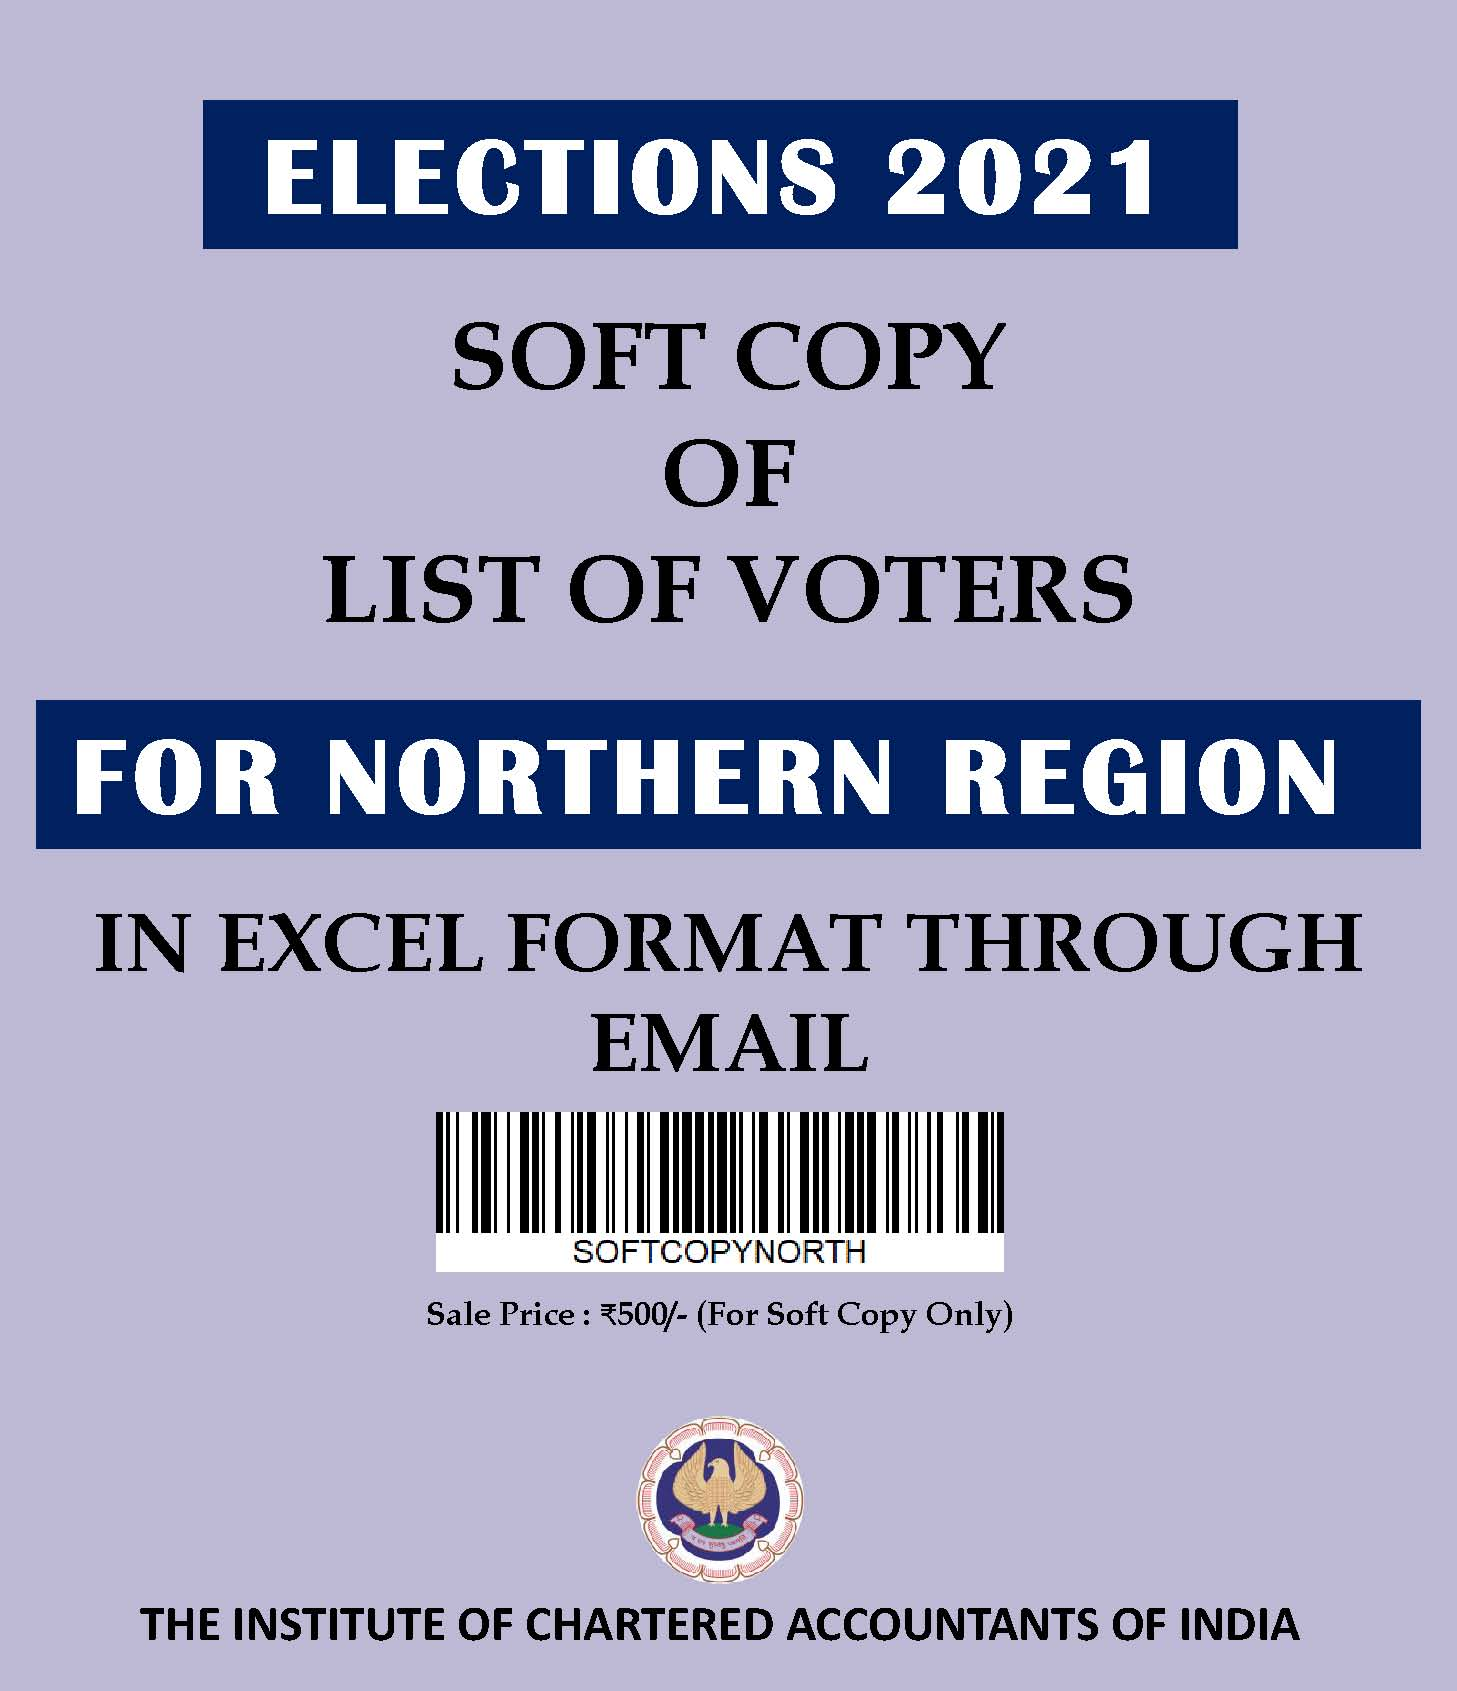 SOFT COPY: List of Voters for Northern Region (Elections 2021) in Excel Format Through E-mail